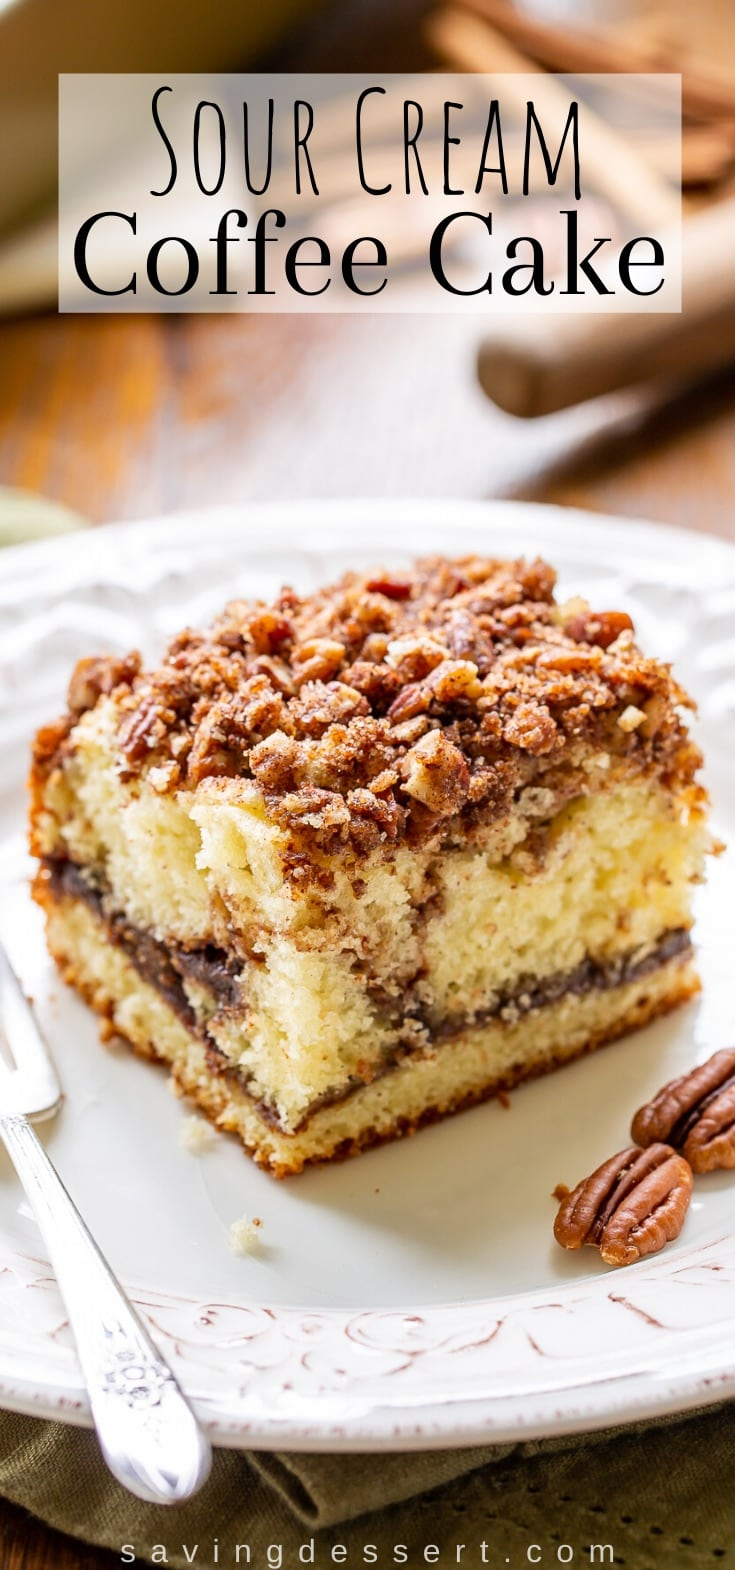 A square piece of cake topped with cinnamon pecan streusel with a ribbon of cinnamon through the middle.